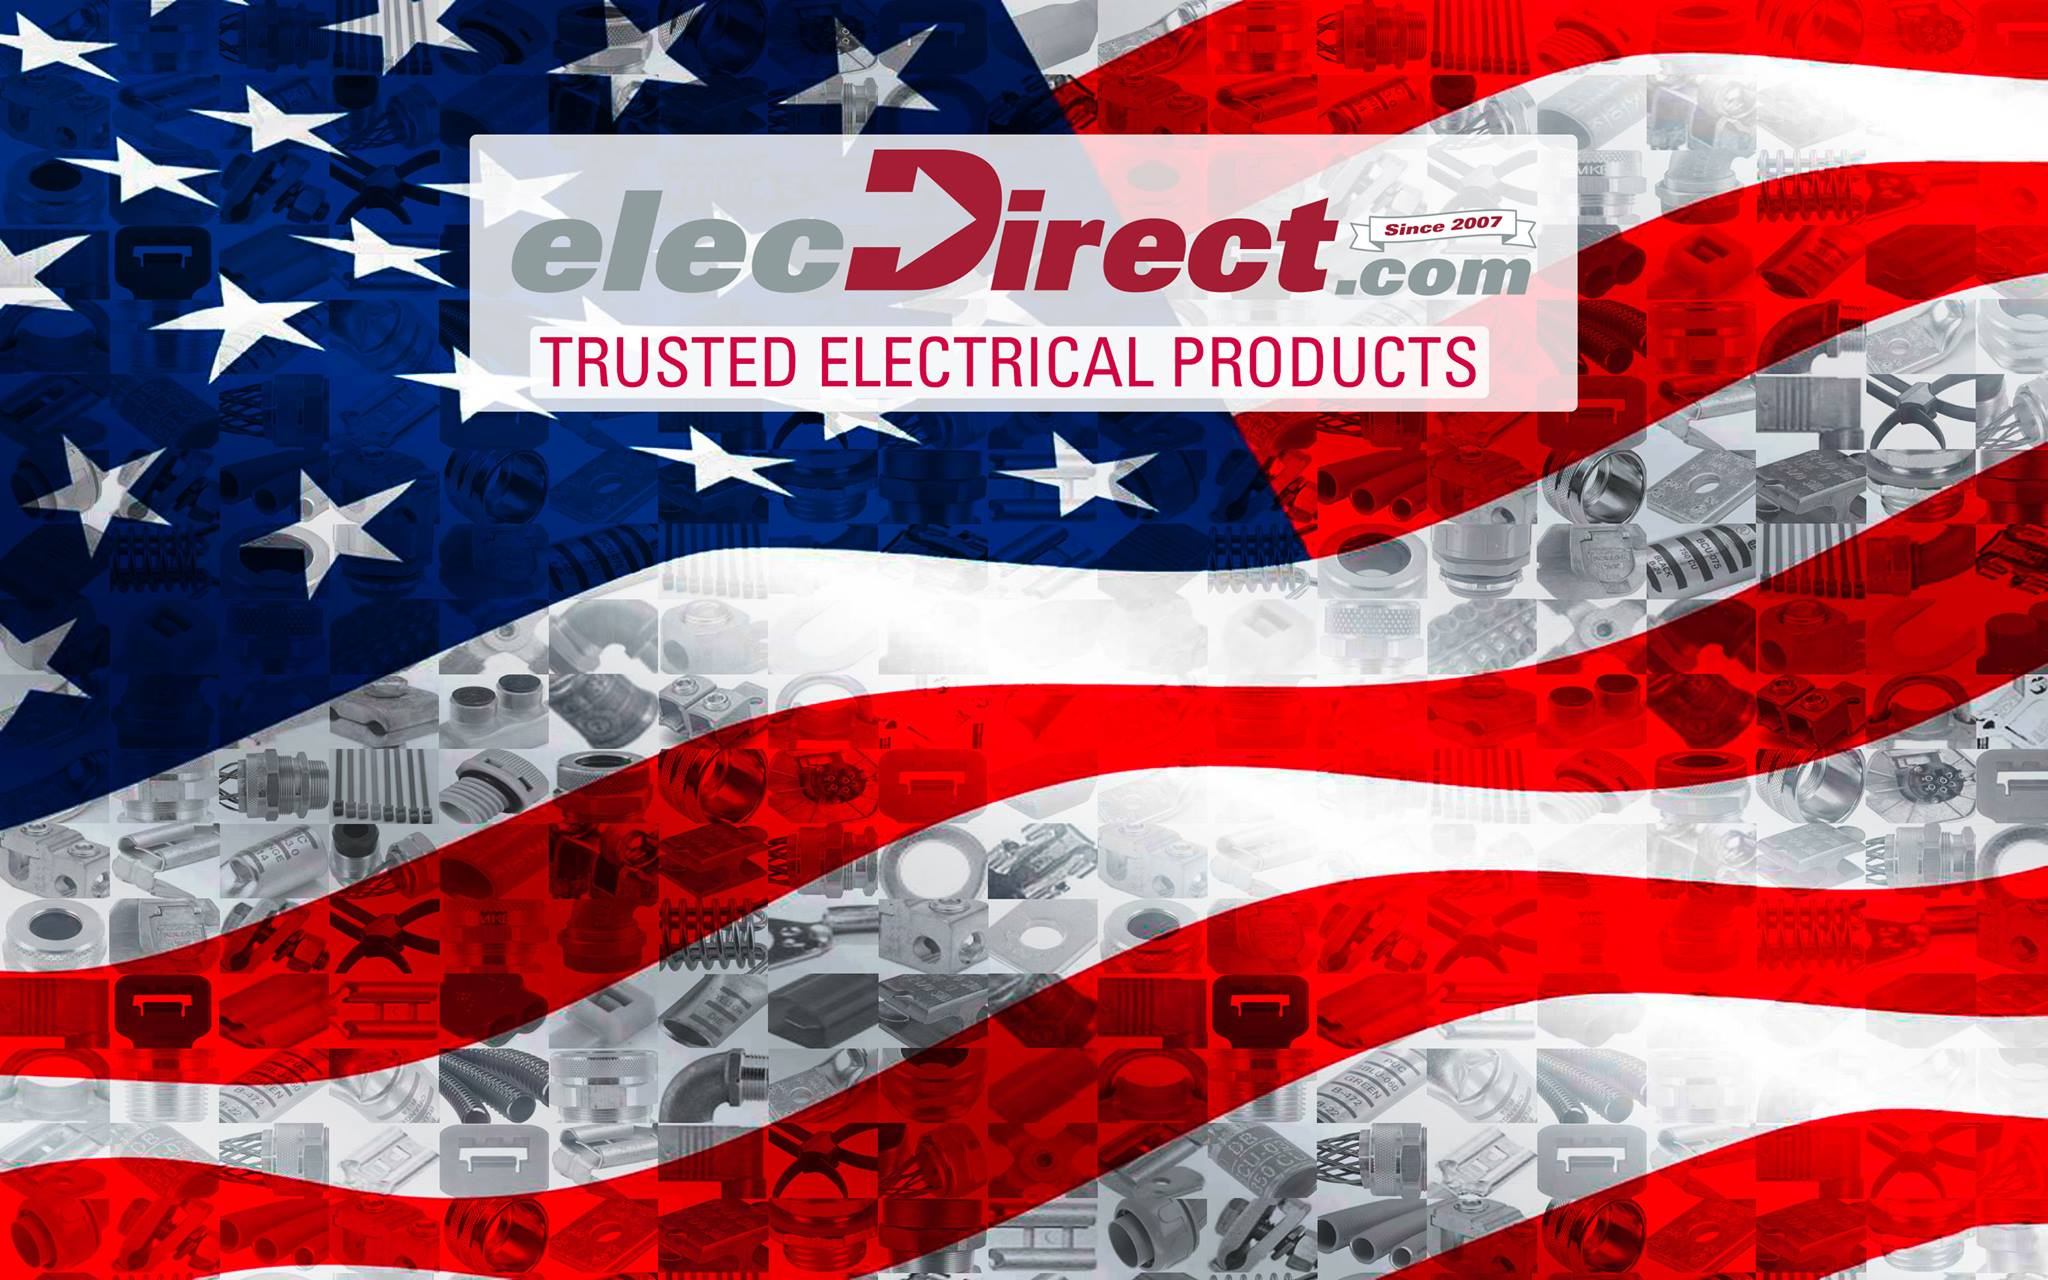 wiring harness assembly the official resource guide electdirect also serves as viable source for your wiring harness assembly parts and components electdirect offers professional grade electrical connector